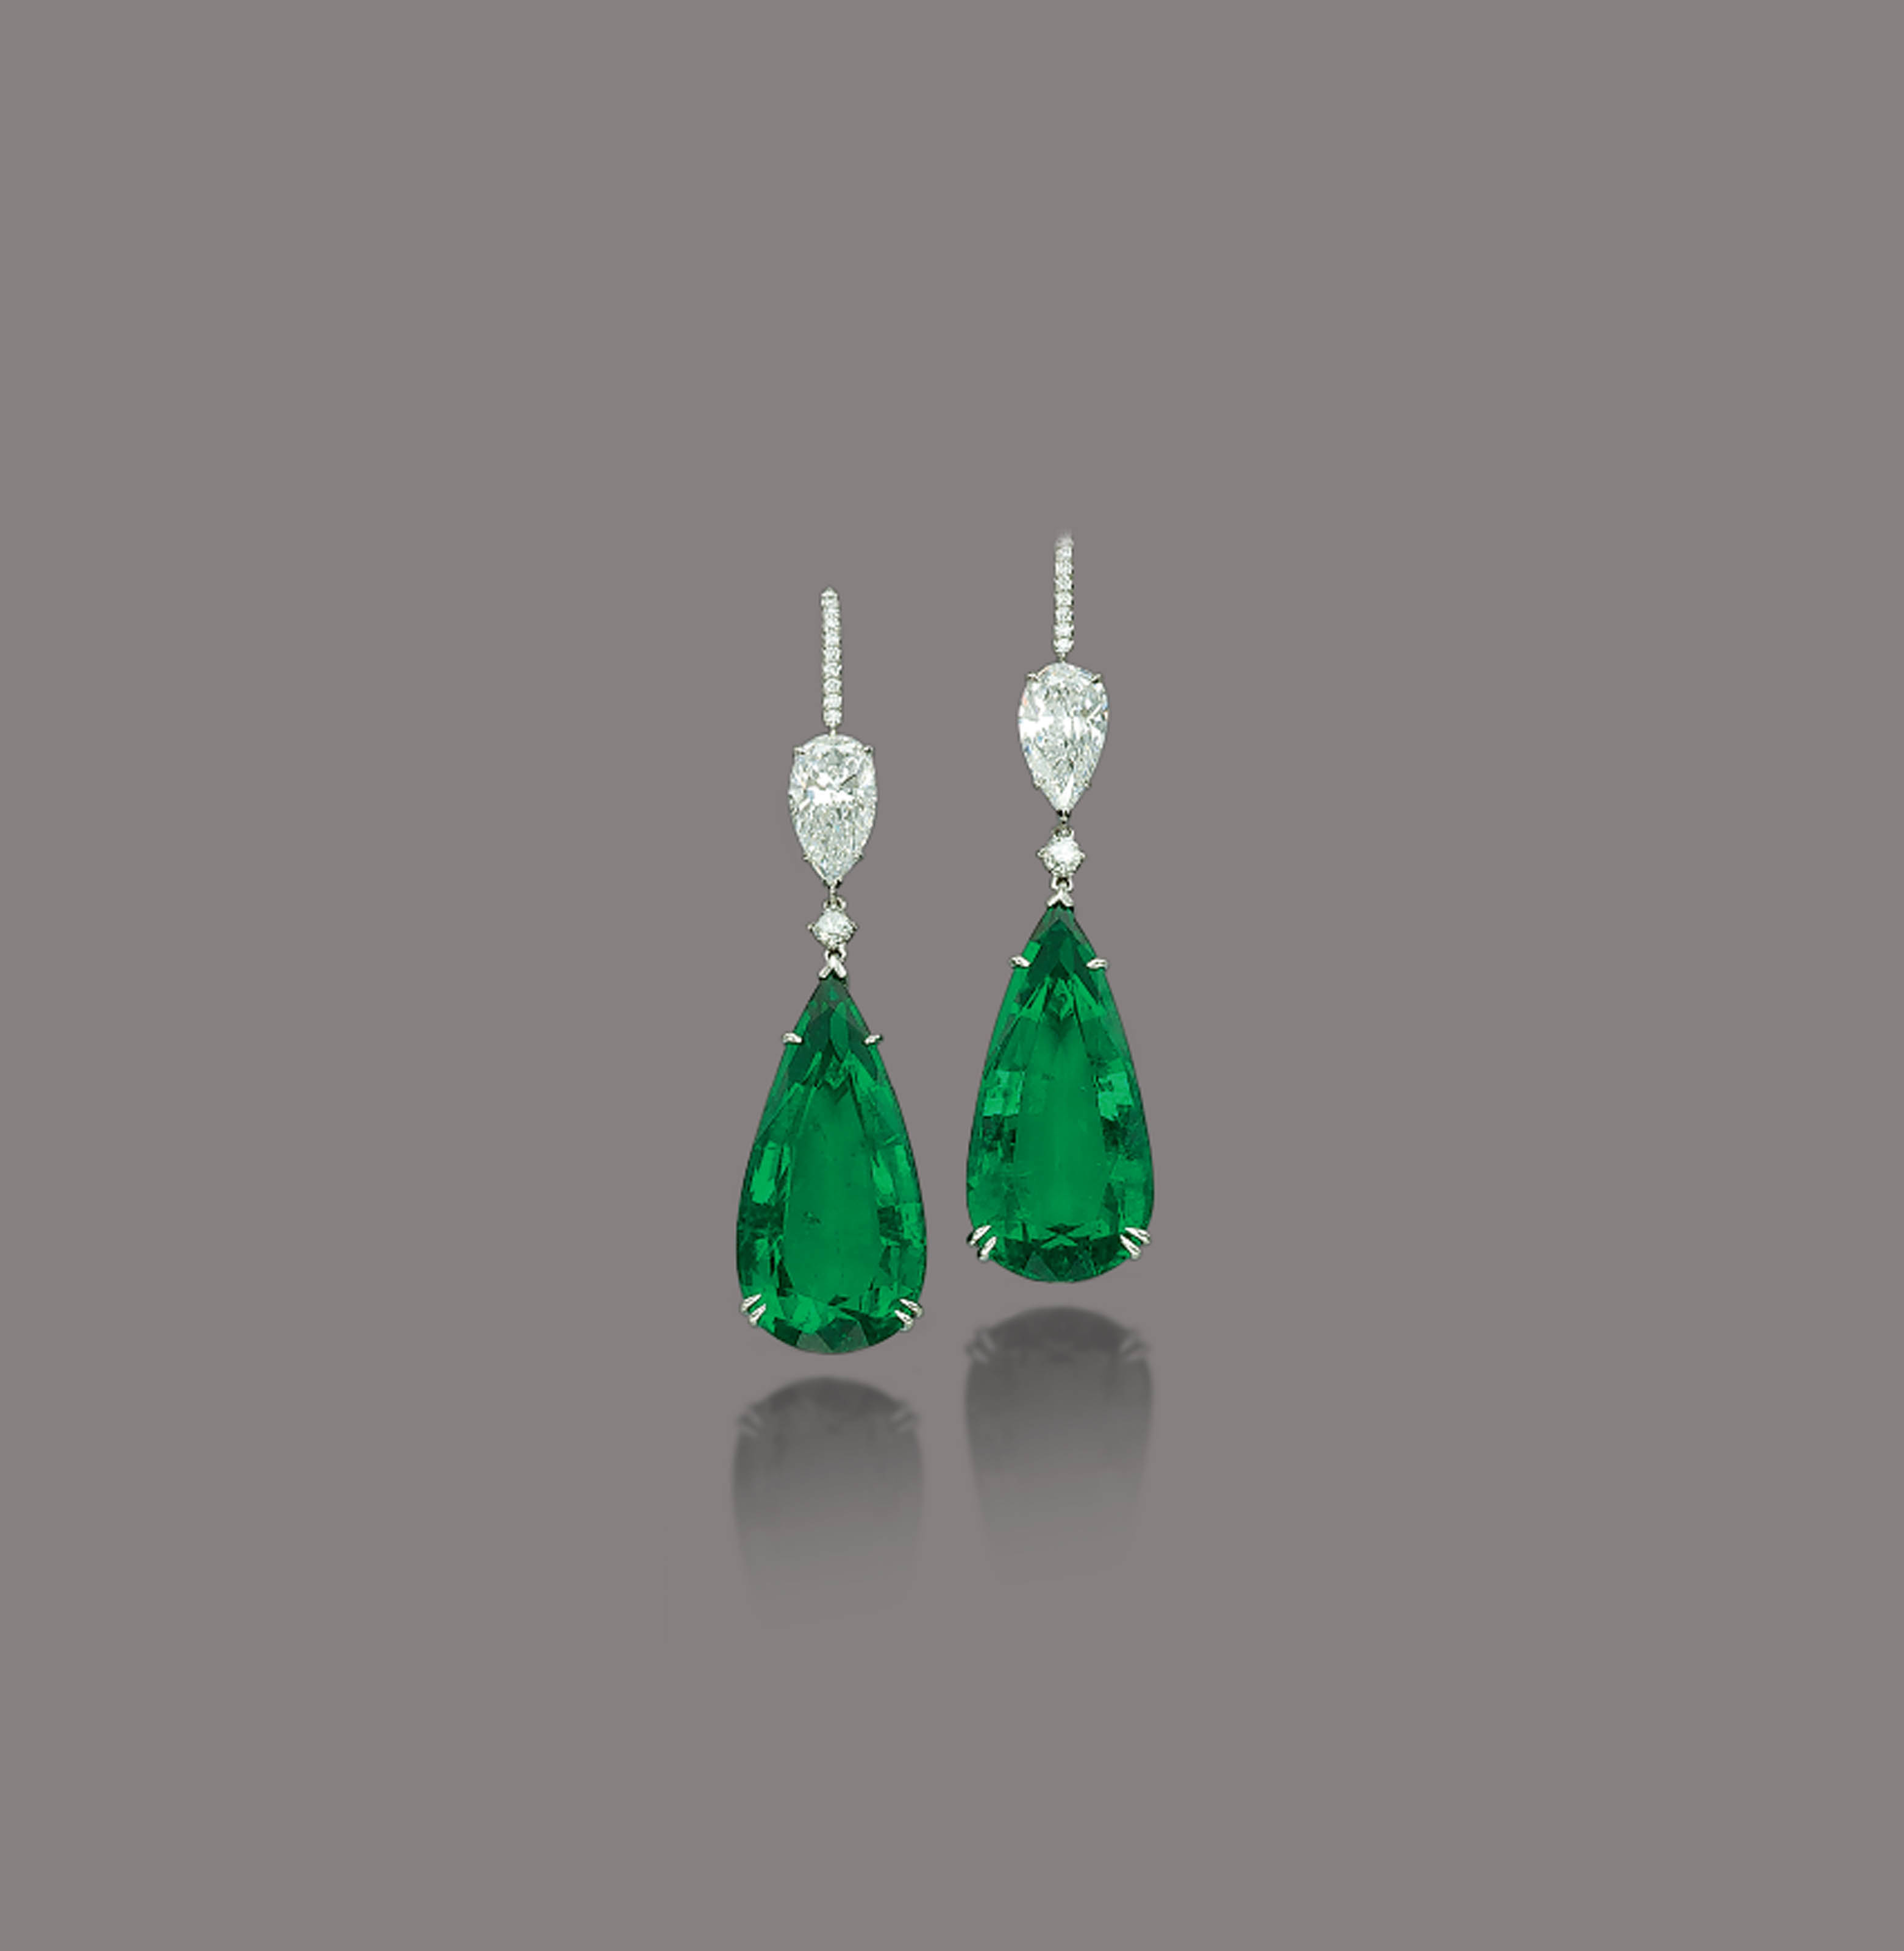 A PAIR OF MAGNIFICENT EMERALD AND DIAMOND EARRINGS